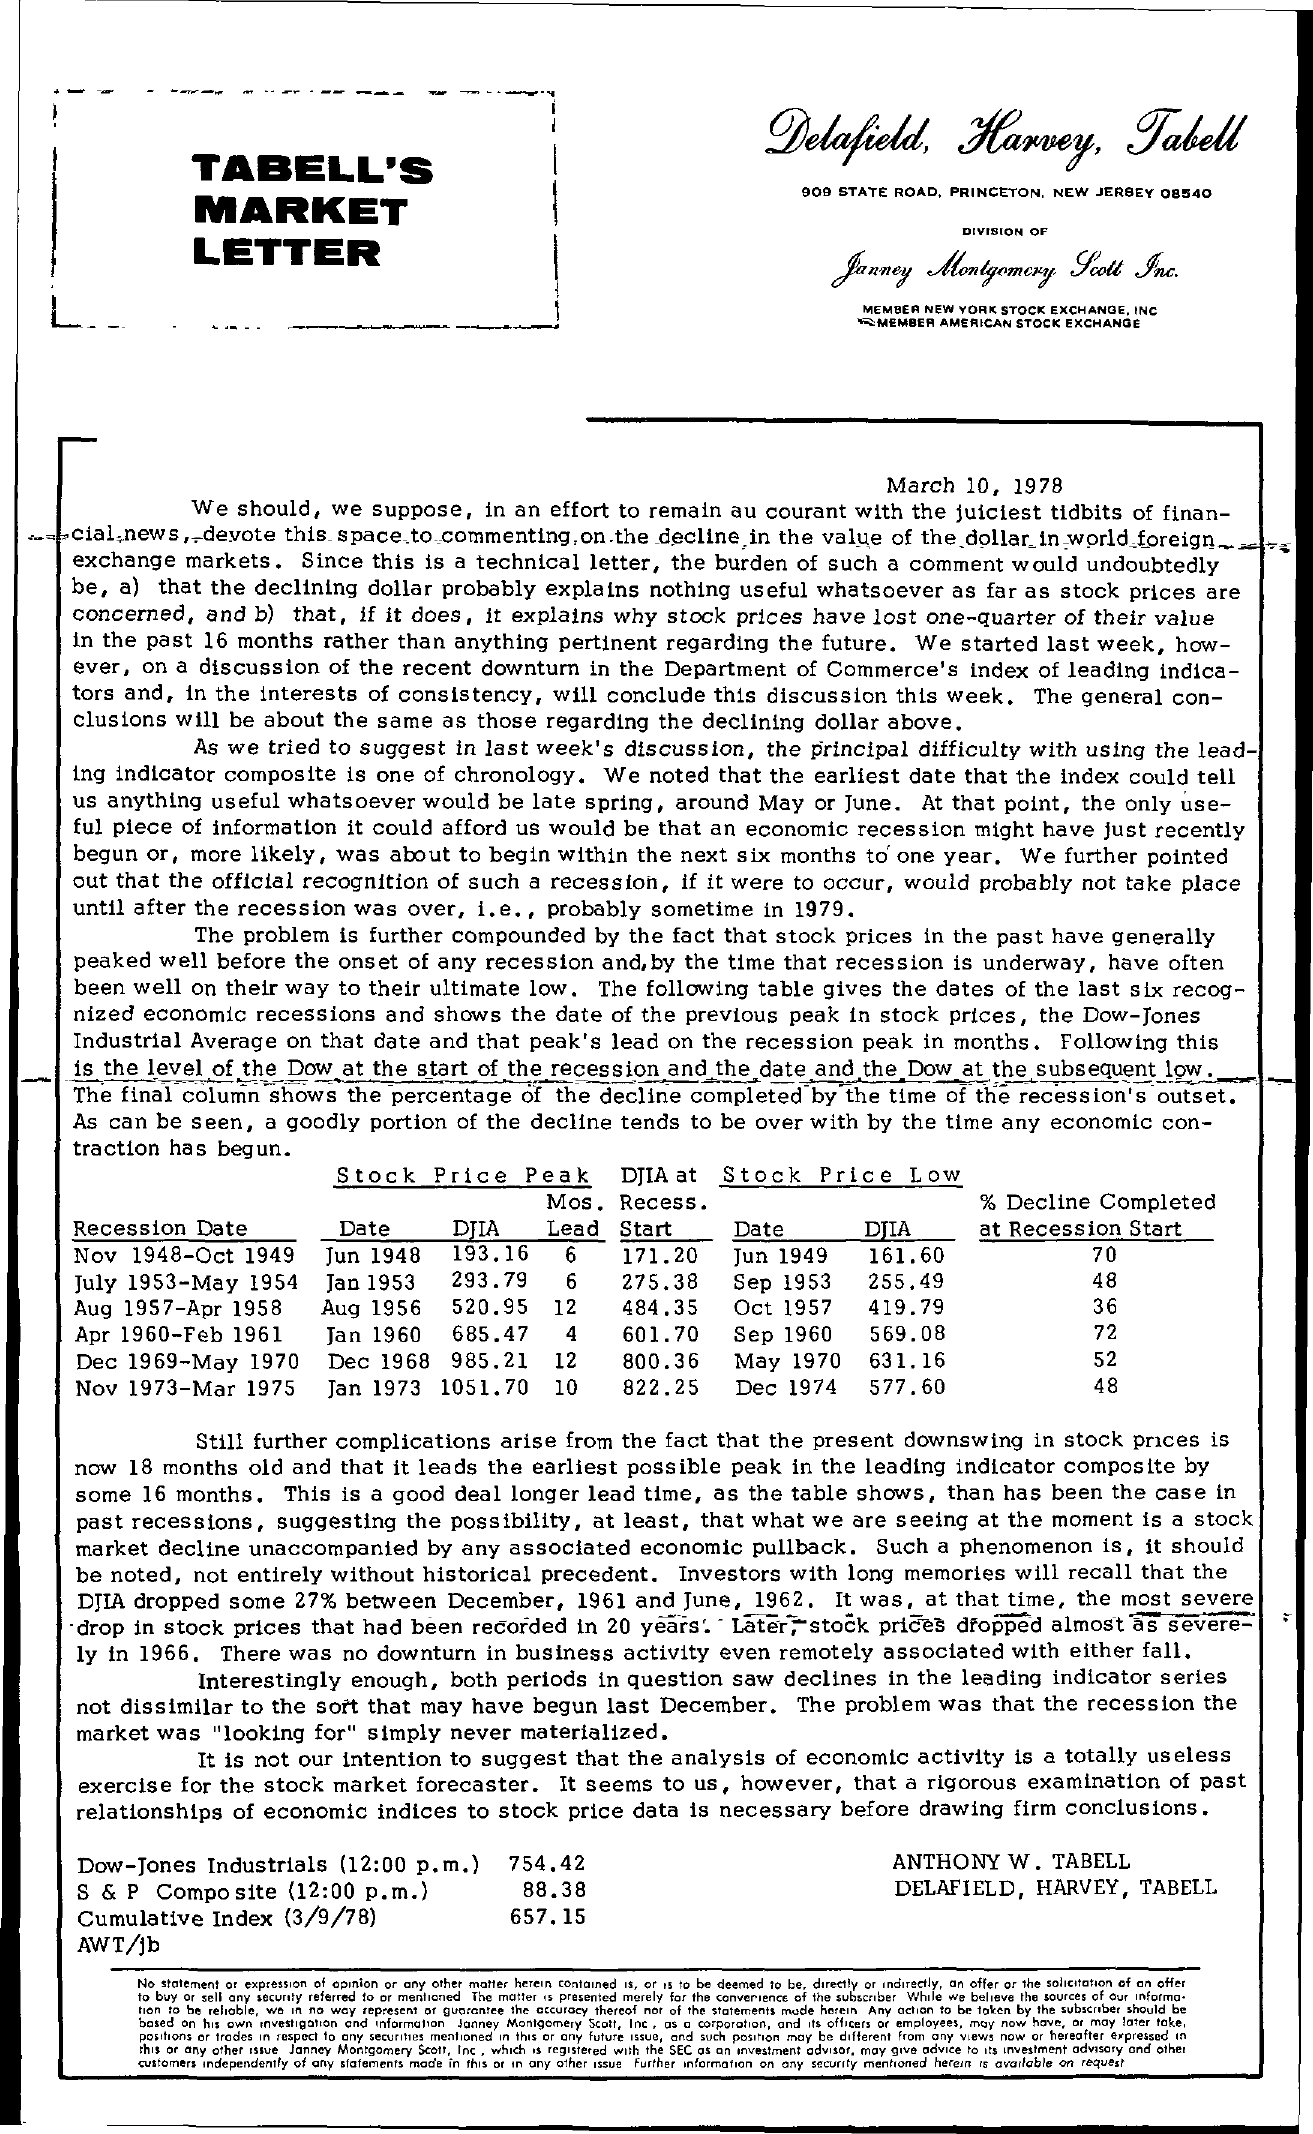 Tabell's Market Letter - March 10, 1978